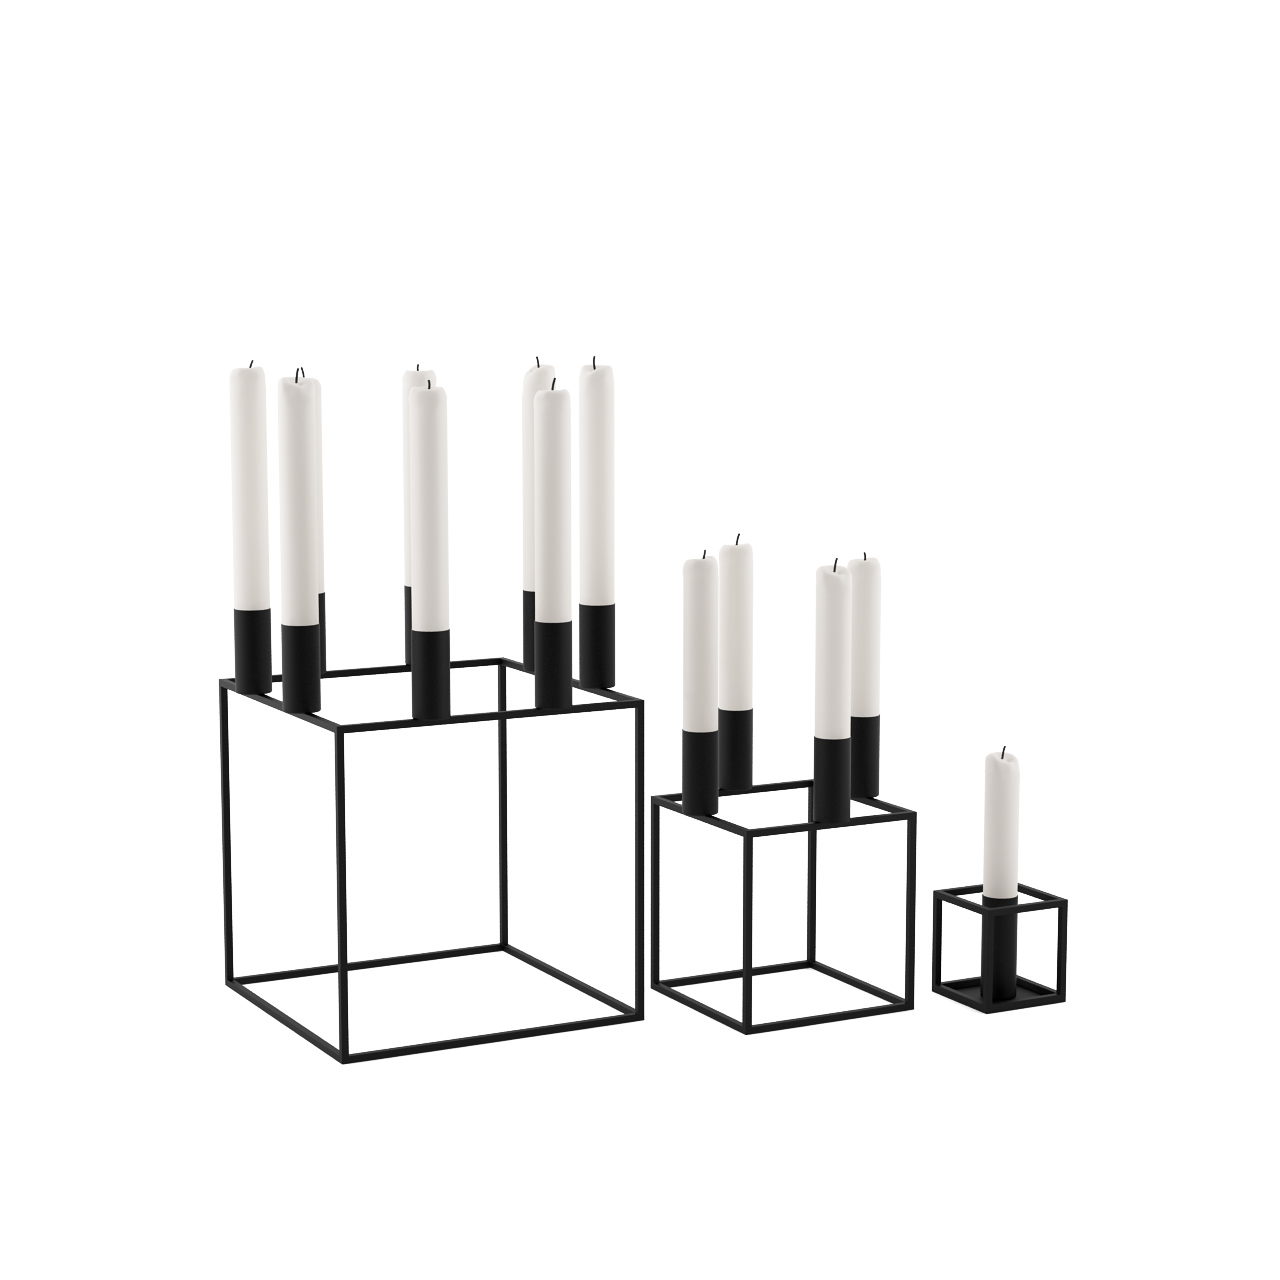 kubus candleholder by lassen dimensiva. Black Bedroom Furniture Sets. Home Design Ideas